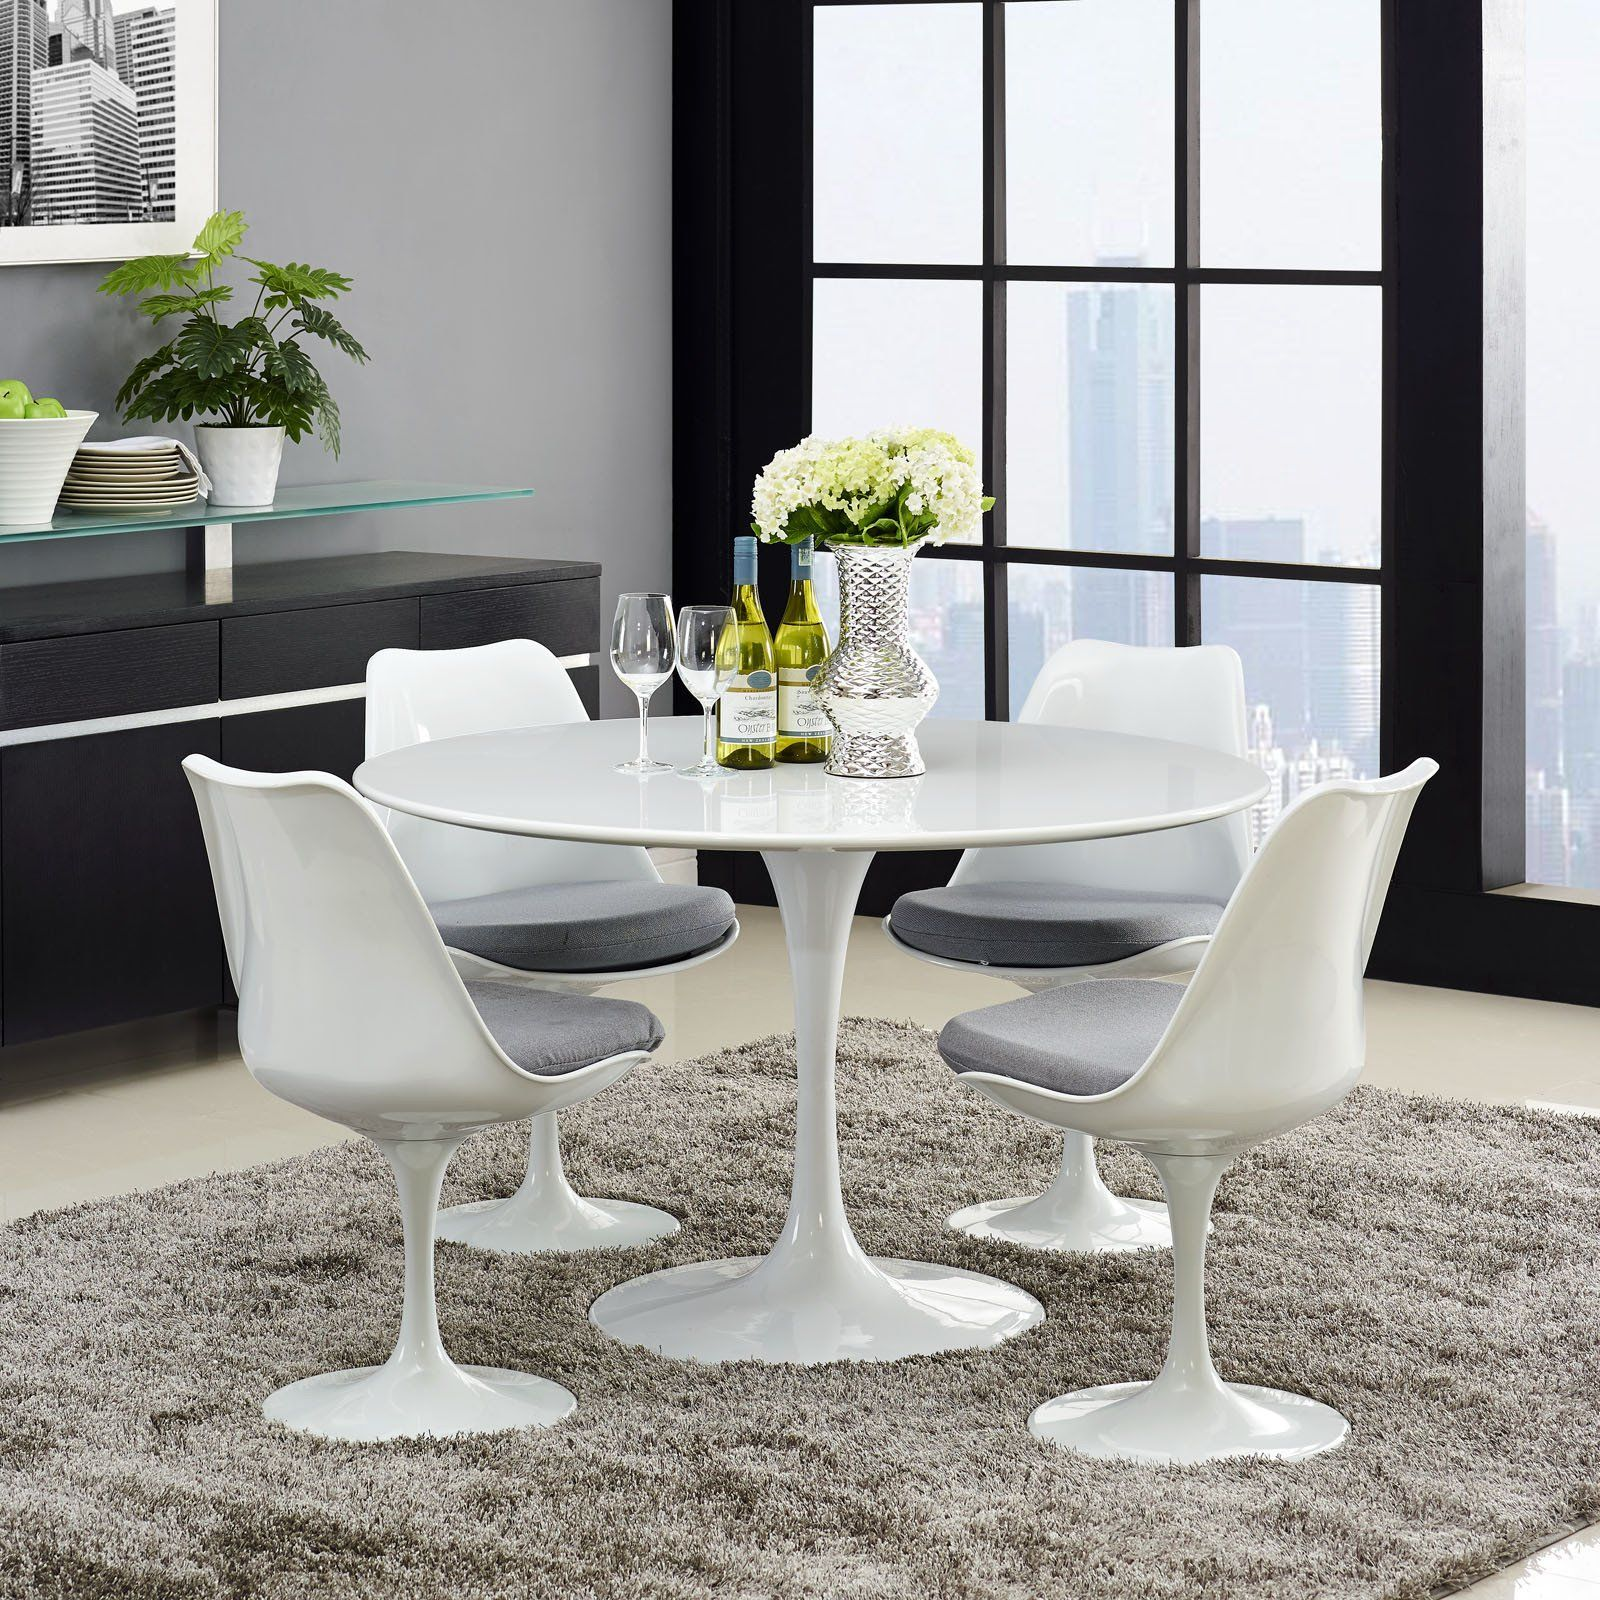 Lore Round Dining Table White Round Dining Table Dining Table